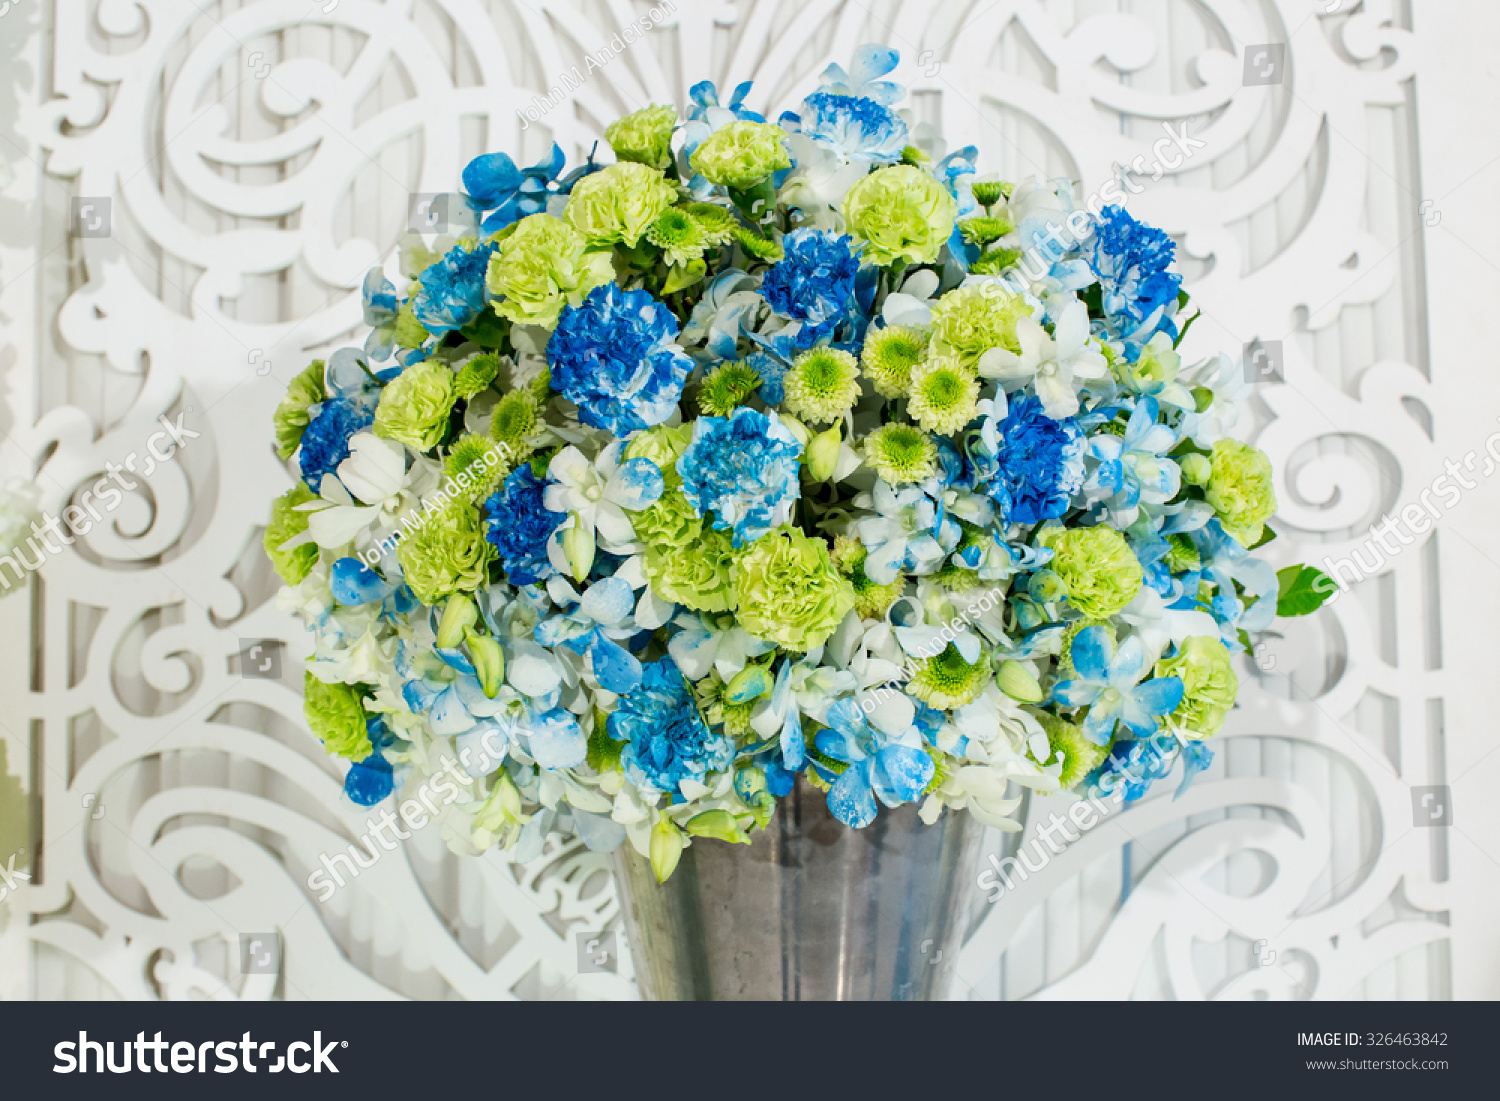 Flower bouquets bunch flowers stock photo royalty free 326463842 flower bouquets bunch of flowers izmirmasajfo